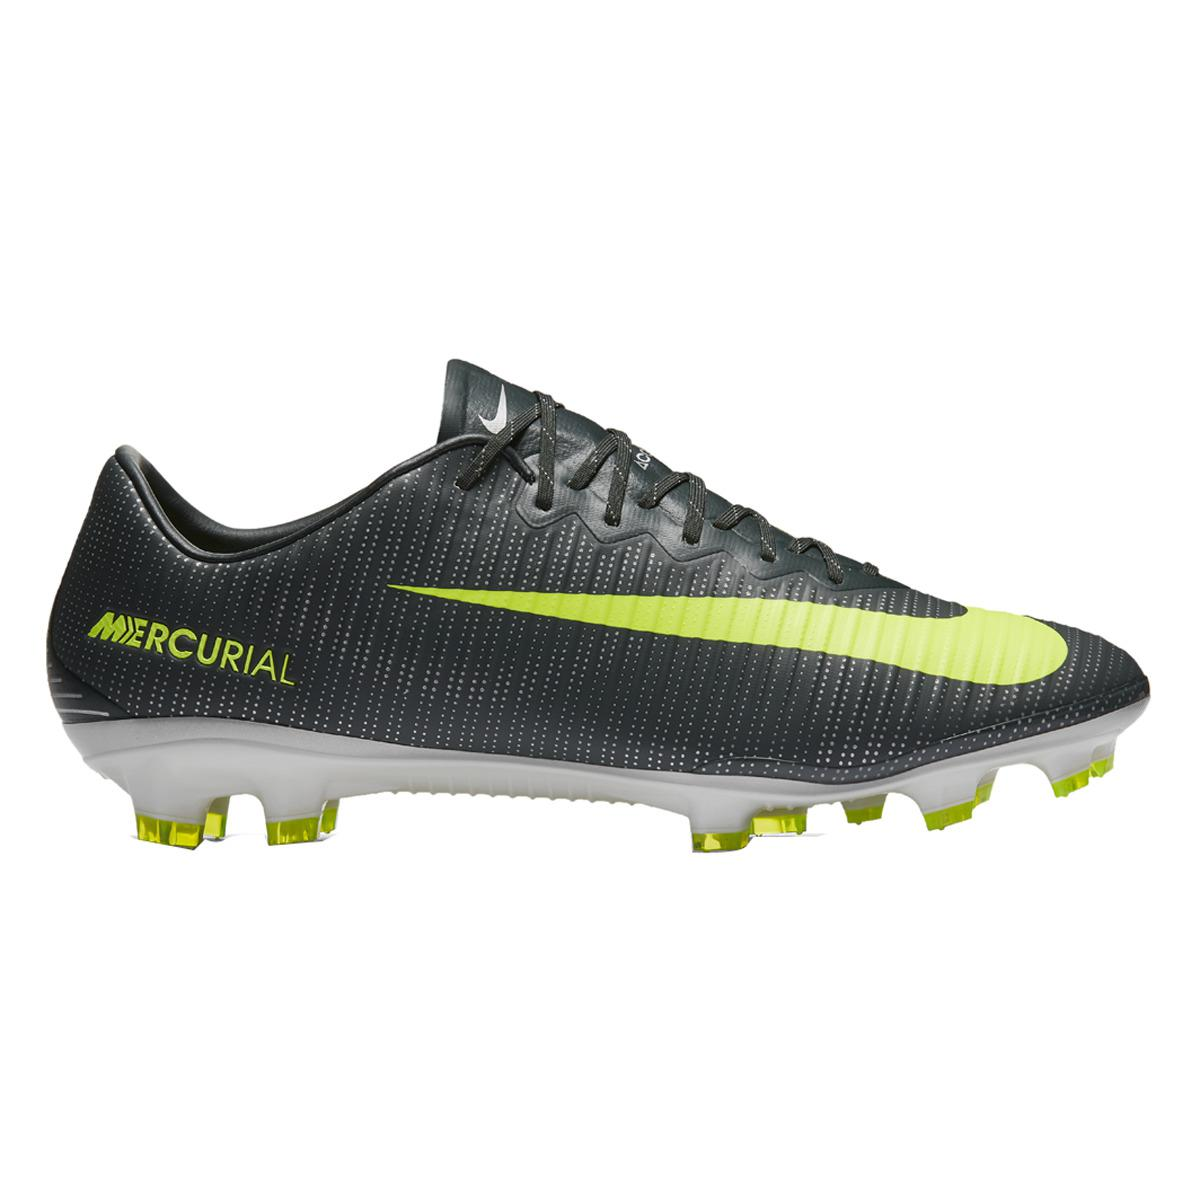 7177acead Lyst - Nike Mercurial Vapor X Cr7 Fg Football Boots in Green for Men